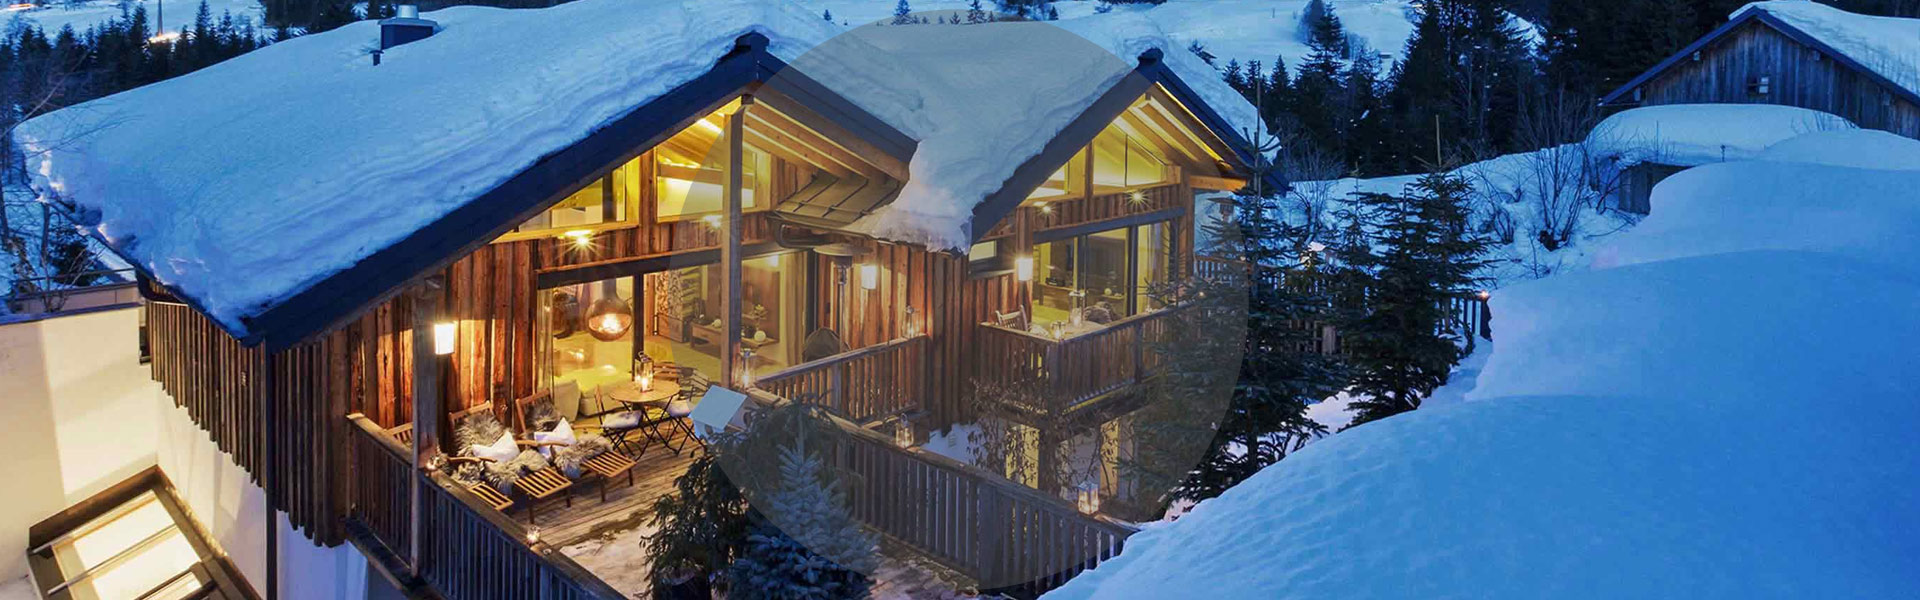 Luxus Lodge